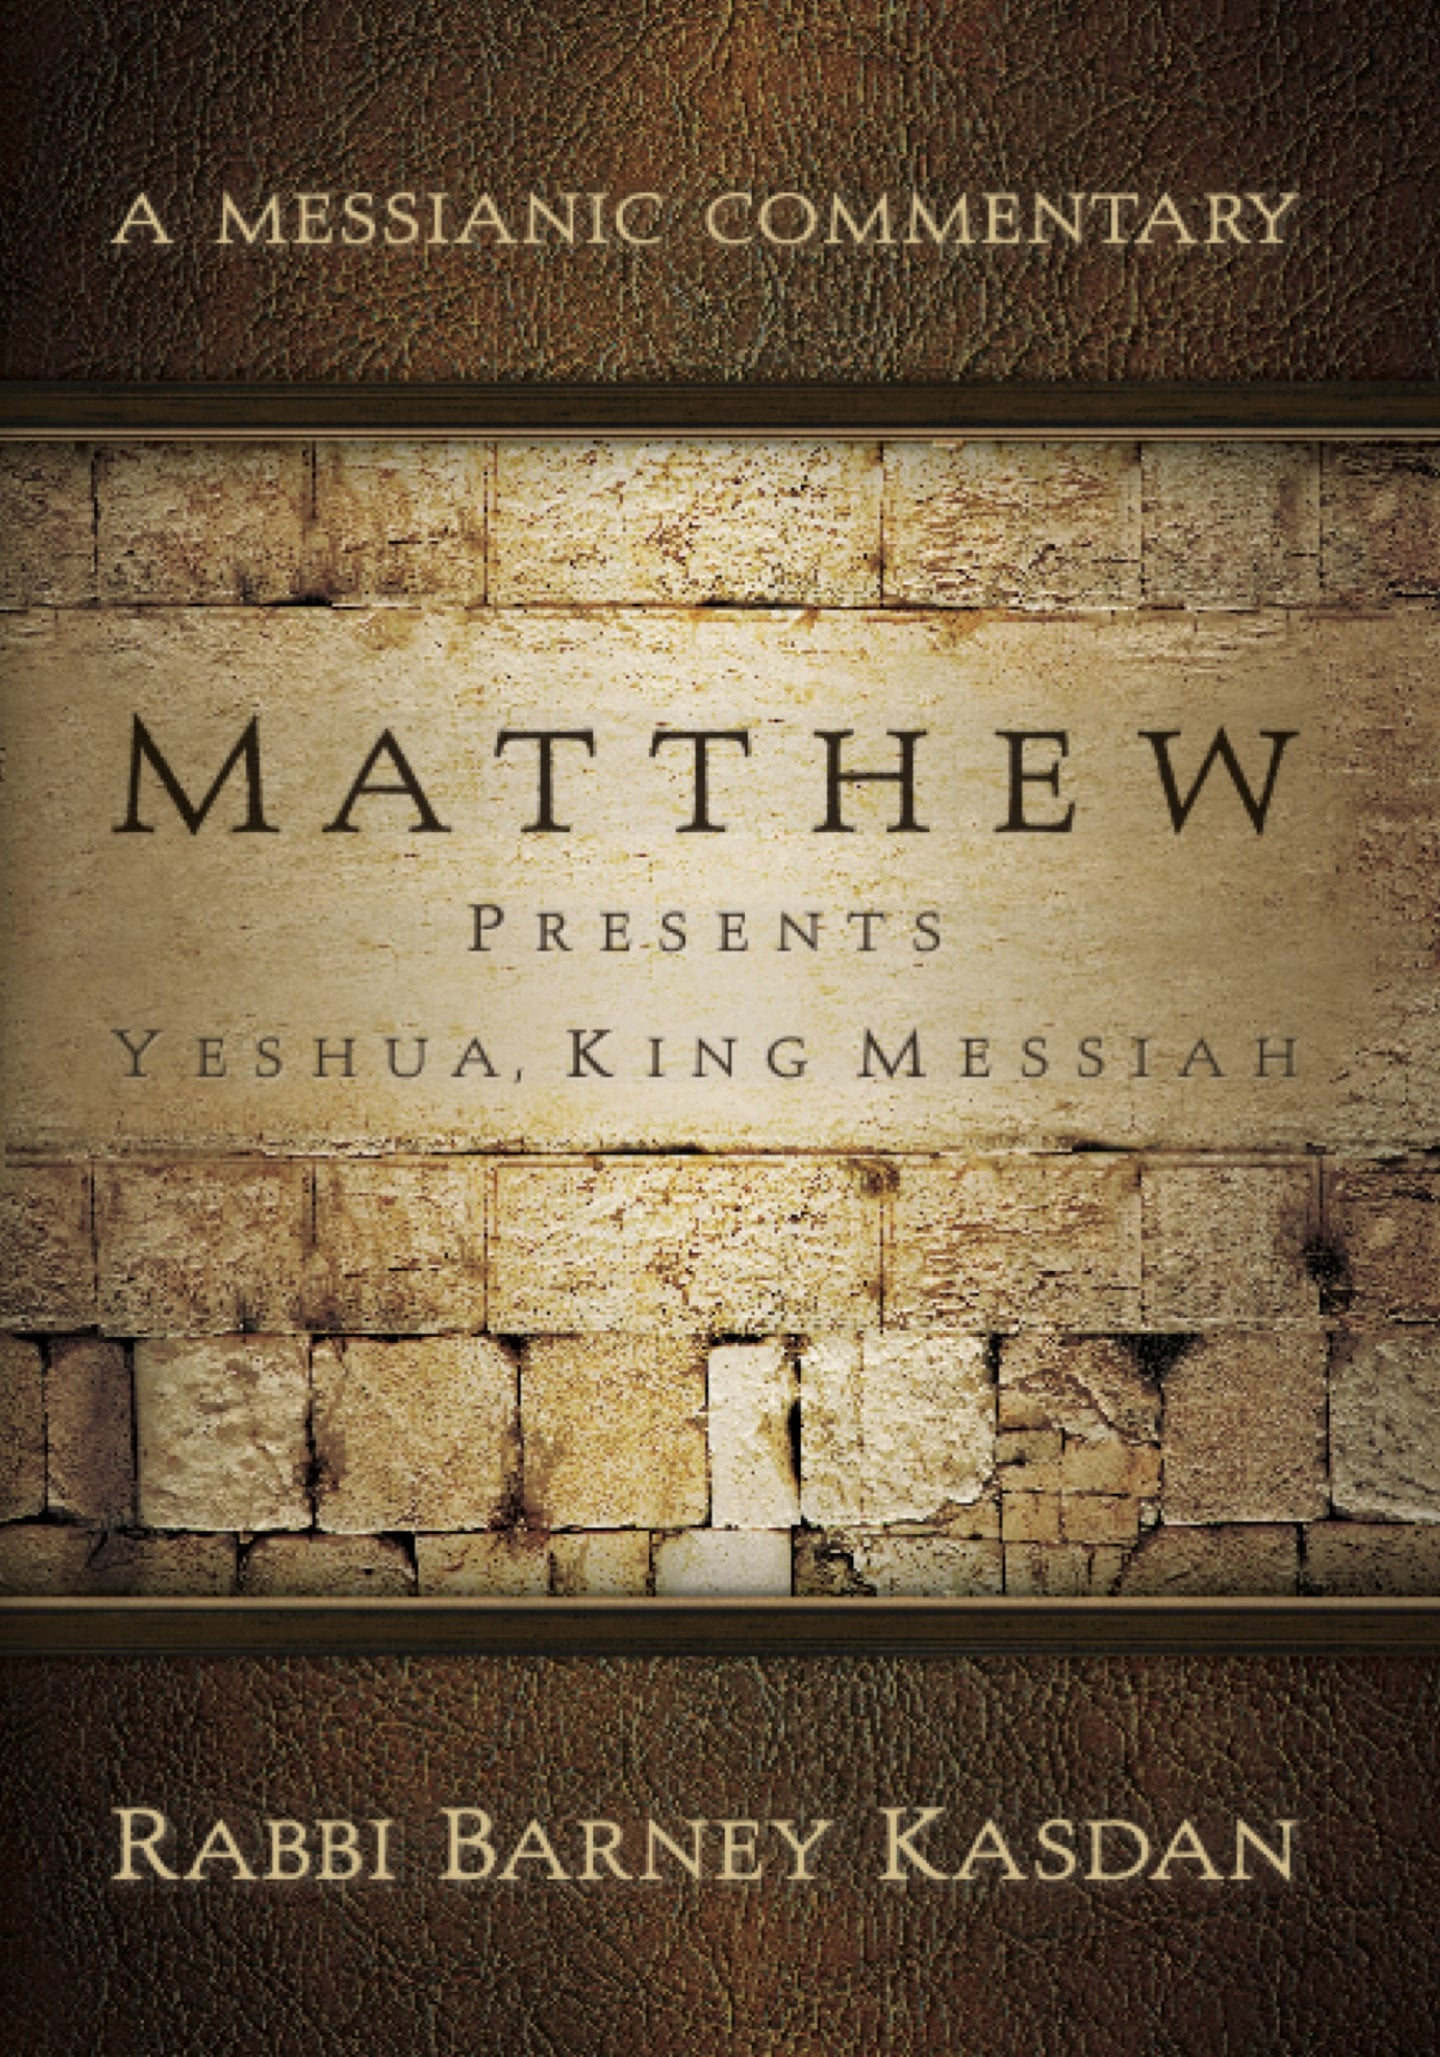 A Messianic Commentary: Matthew Presents Yeshua, King Messiah by Rabbi Barney Kasdan